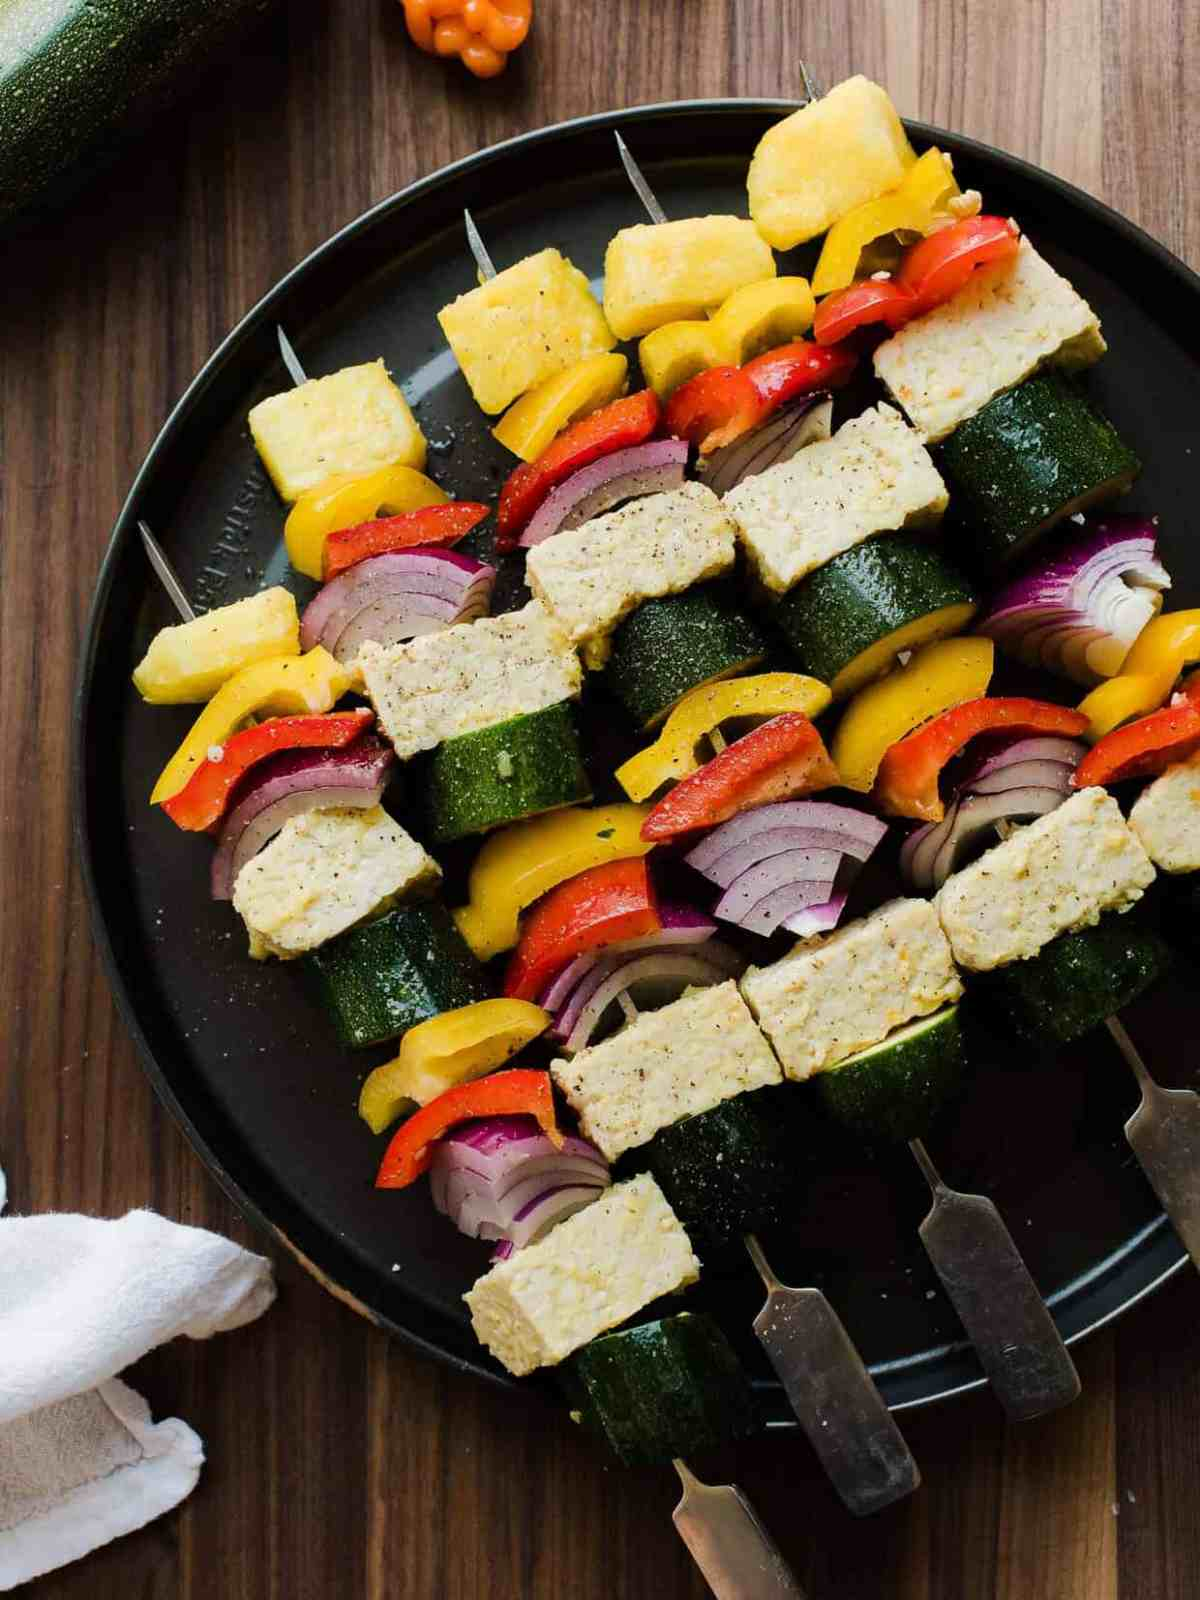 Grilled vegetable skewers with pineapple on a black plate.